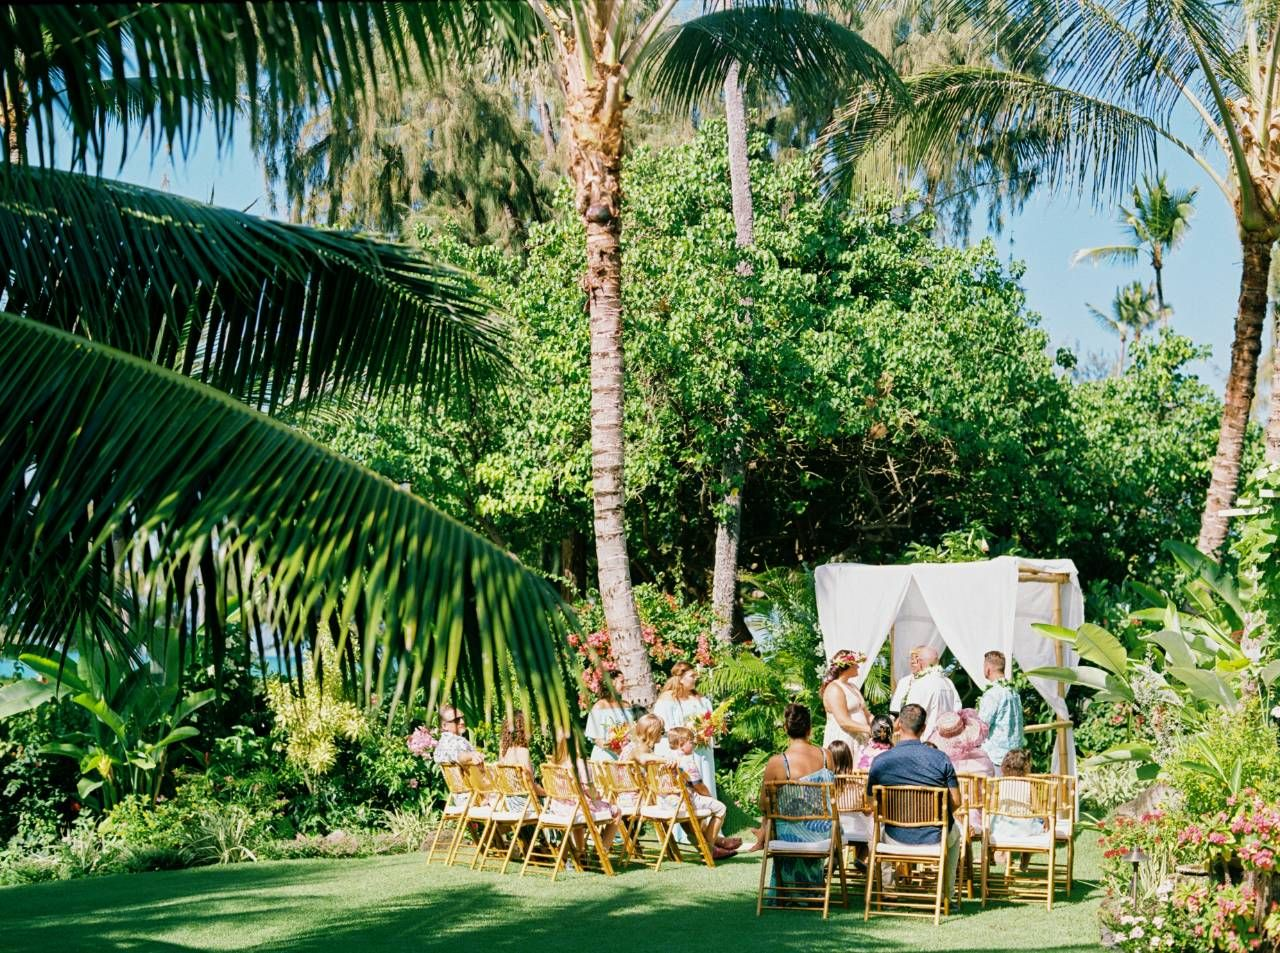 An intimate ceremony among all the tropical beauty. So lucky to be a part of these moments. . . . Featuring our Bamboo Folding Chairs  #oahu #hawaii #wedding #styled #ceremony #hawaiilife #weddings #weddinggoals #oahulife #ceremonydecor #ceremonyflowers #luckyweliveinhawaii #weddinglook #outdoorceremony #oahuevents #bridal #dreamwedding #love #design #aloha #weddingmoments #hawaiian #weddingceremonydecor #weddinggoals #luxurywedding #weddingbells #hawaiilove #styledetails